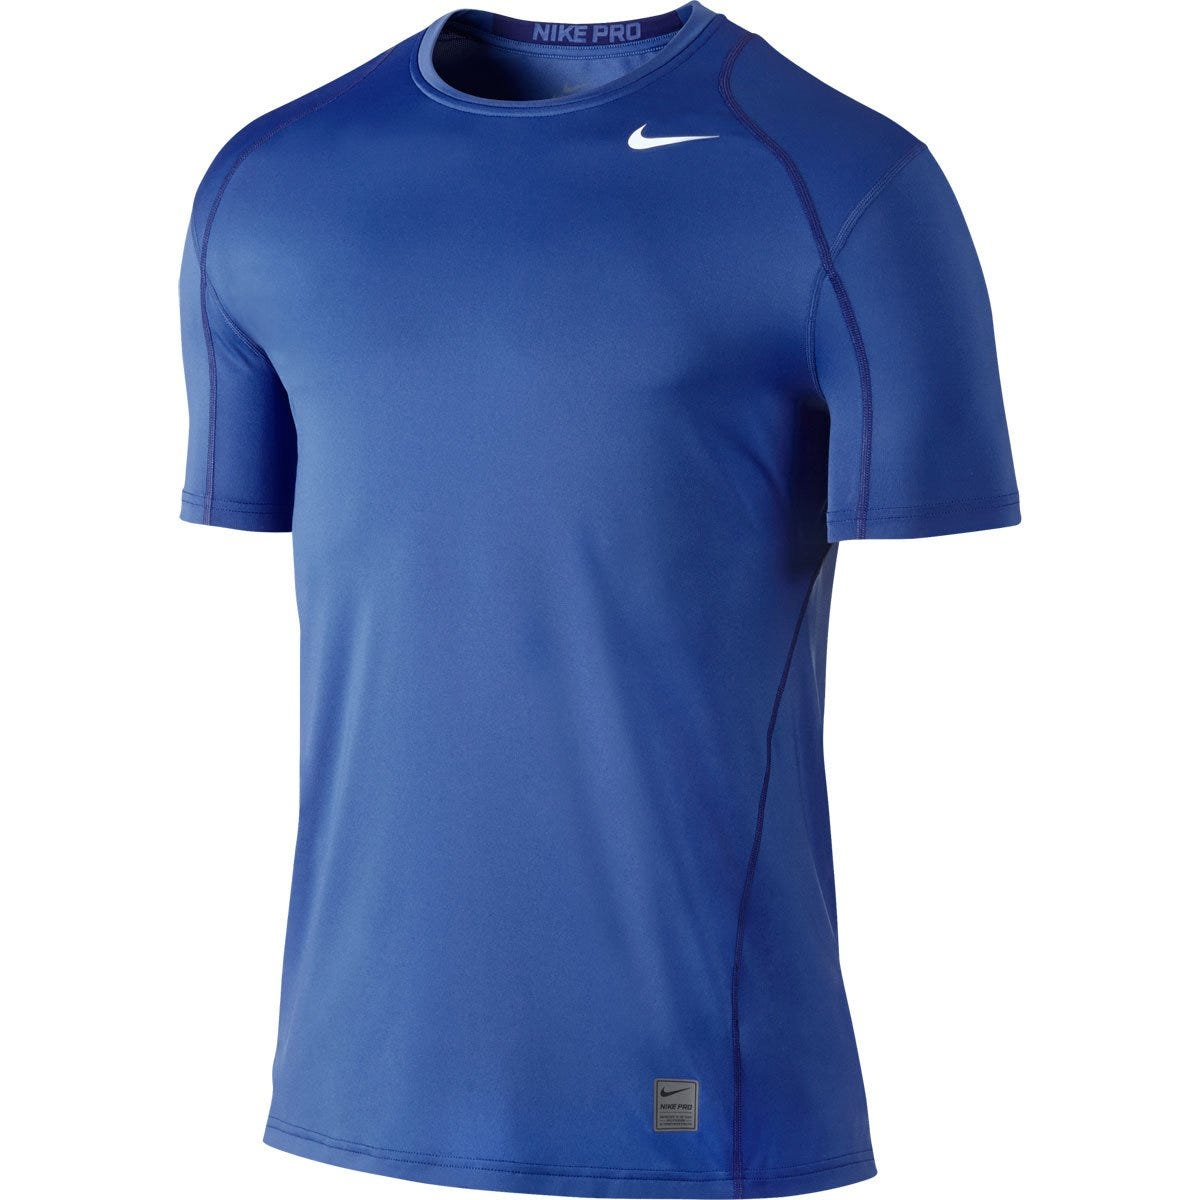 Nike Pro Cool Fitted Senior Short Sleeve Top